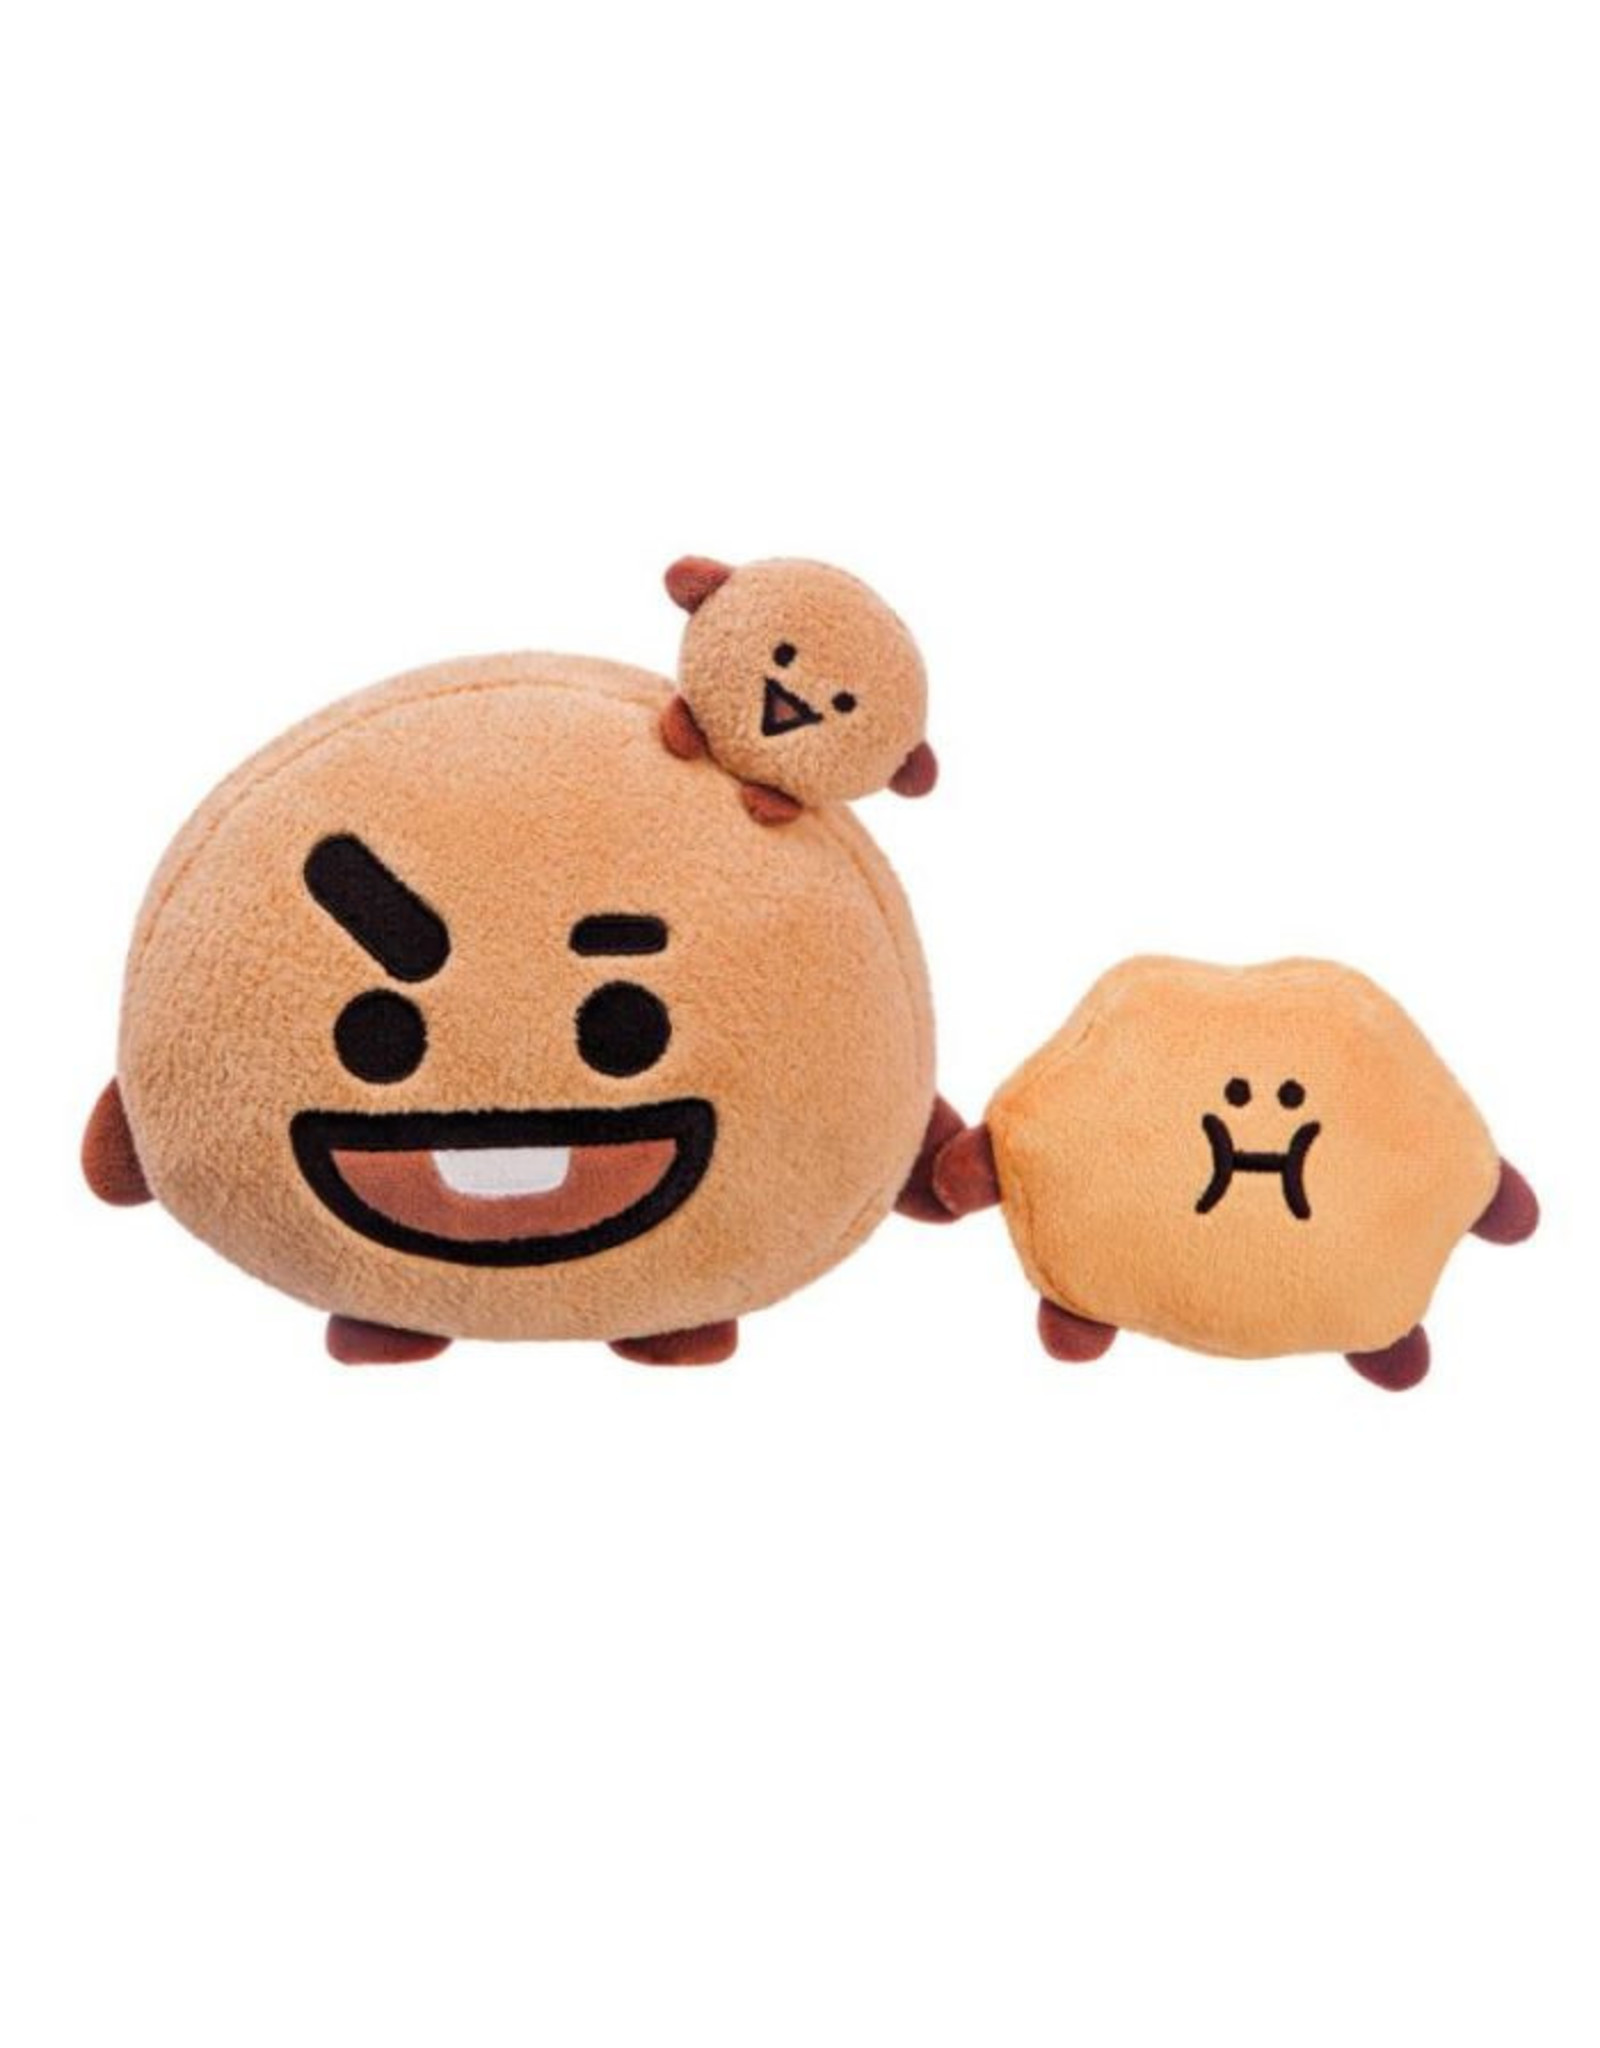 BT21 - Shooky - Line Friends Big Plush - 17 cm